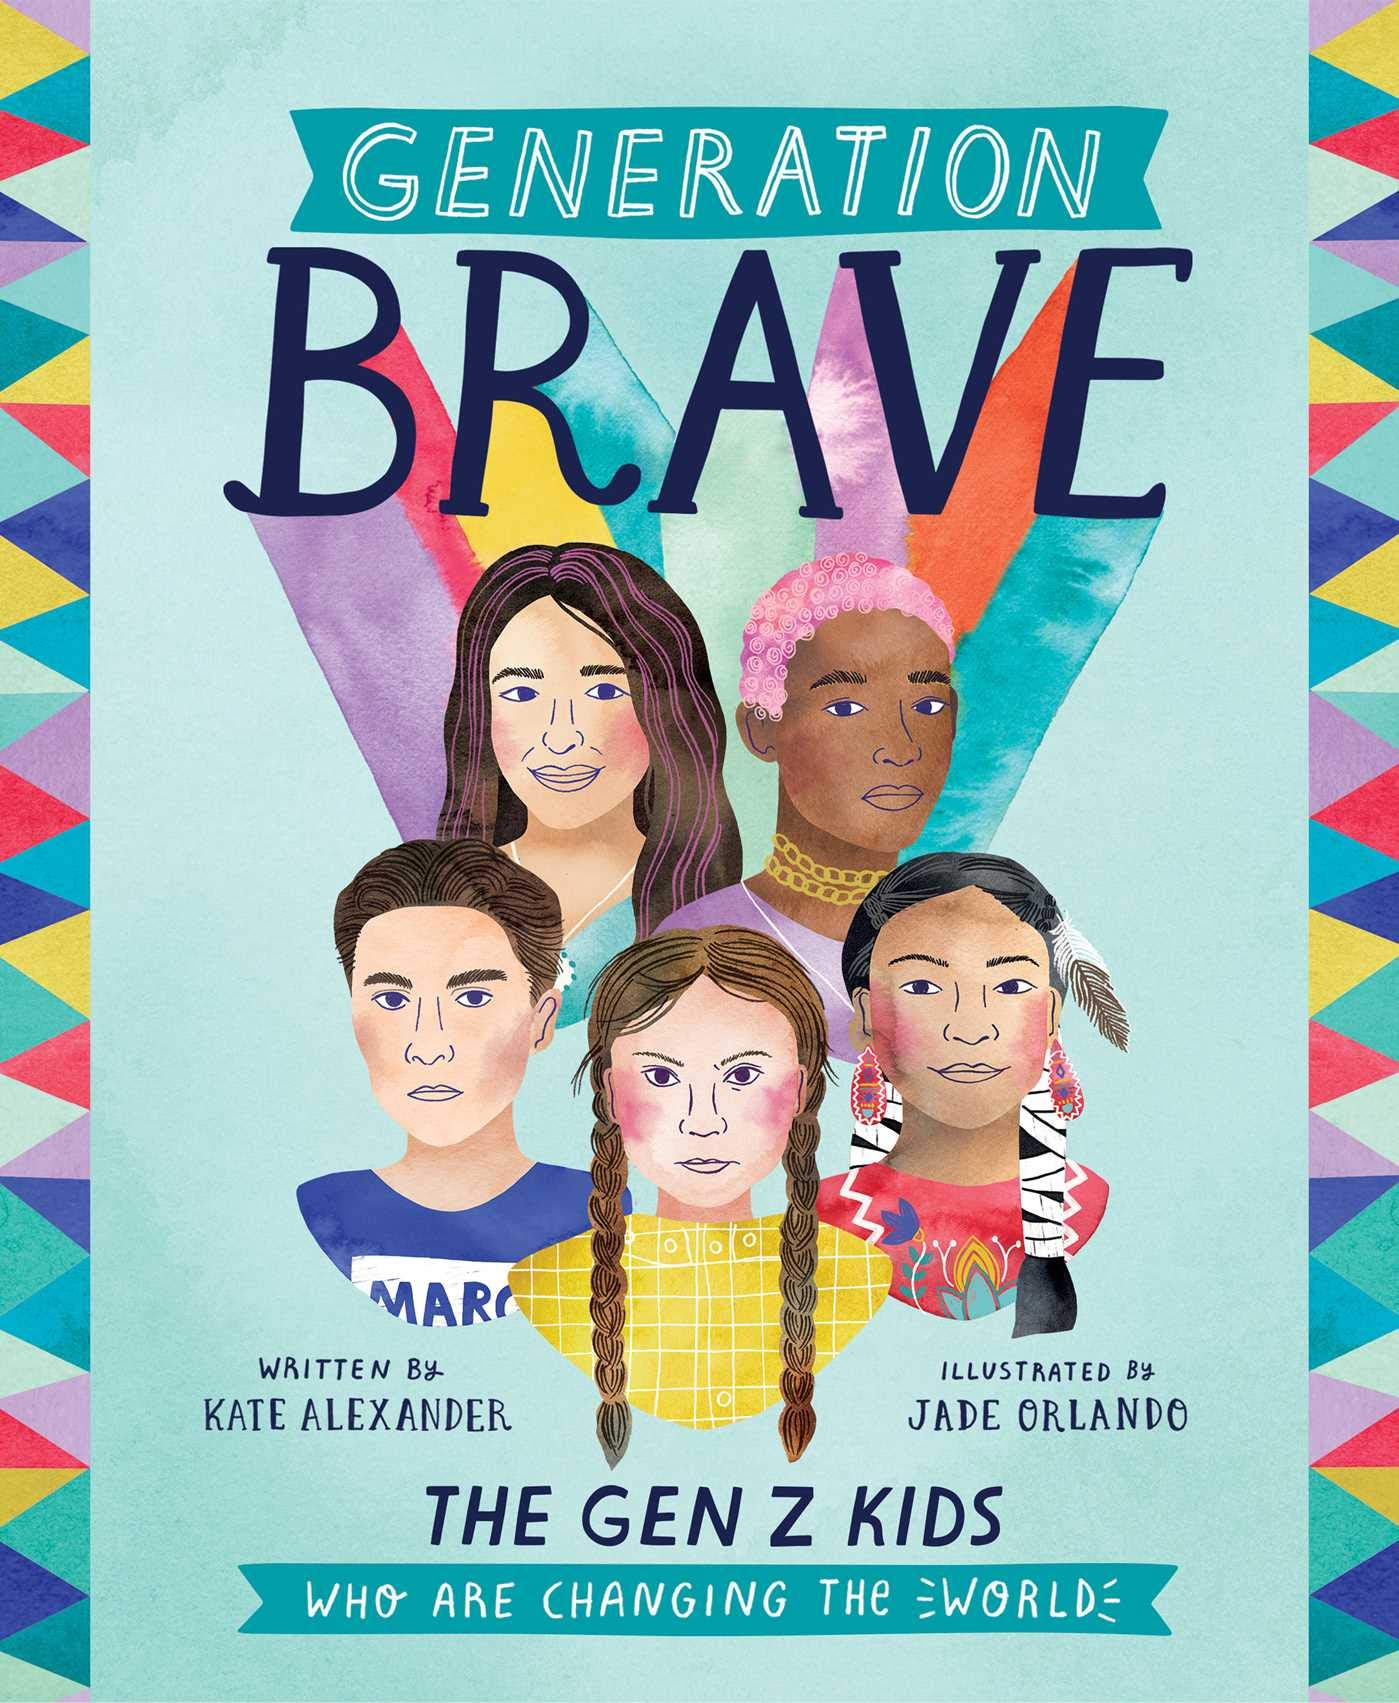 Amazon.com: Generation Brave: The Gen Z Kids Who Are Changing the World  (0050837437388): Alexander, Kate: Books